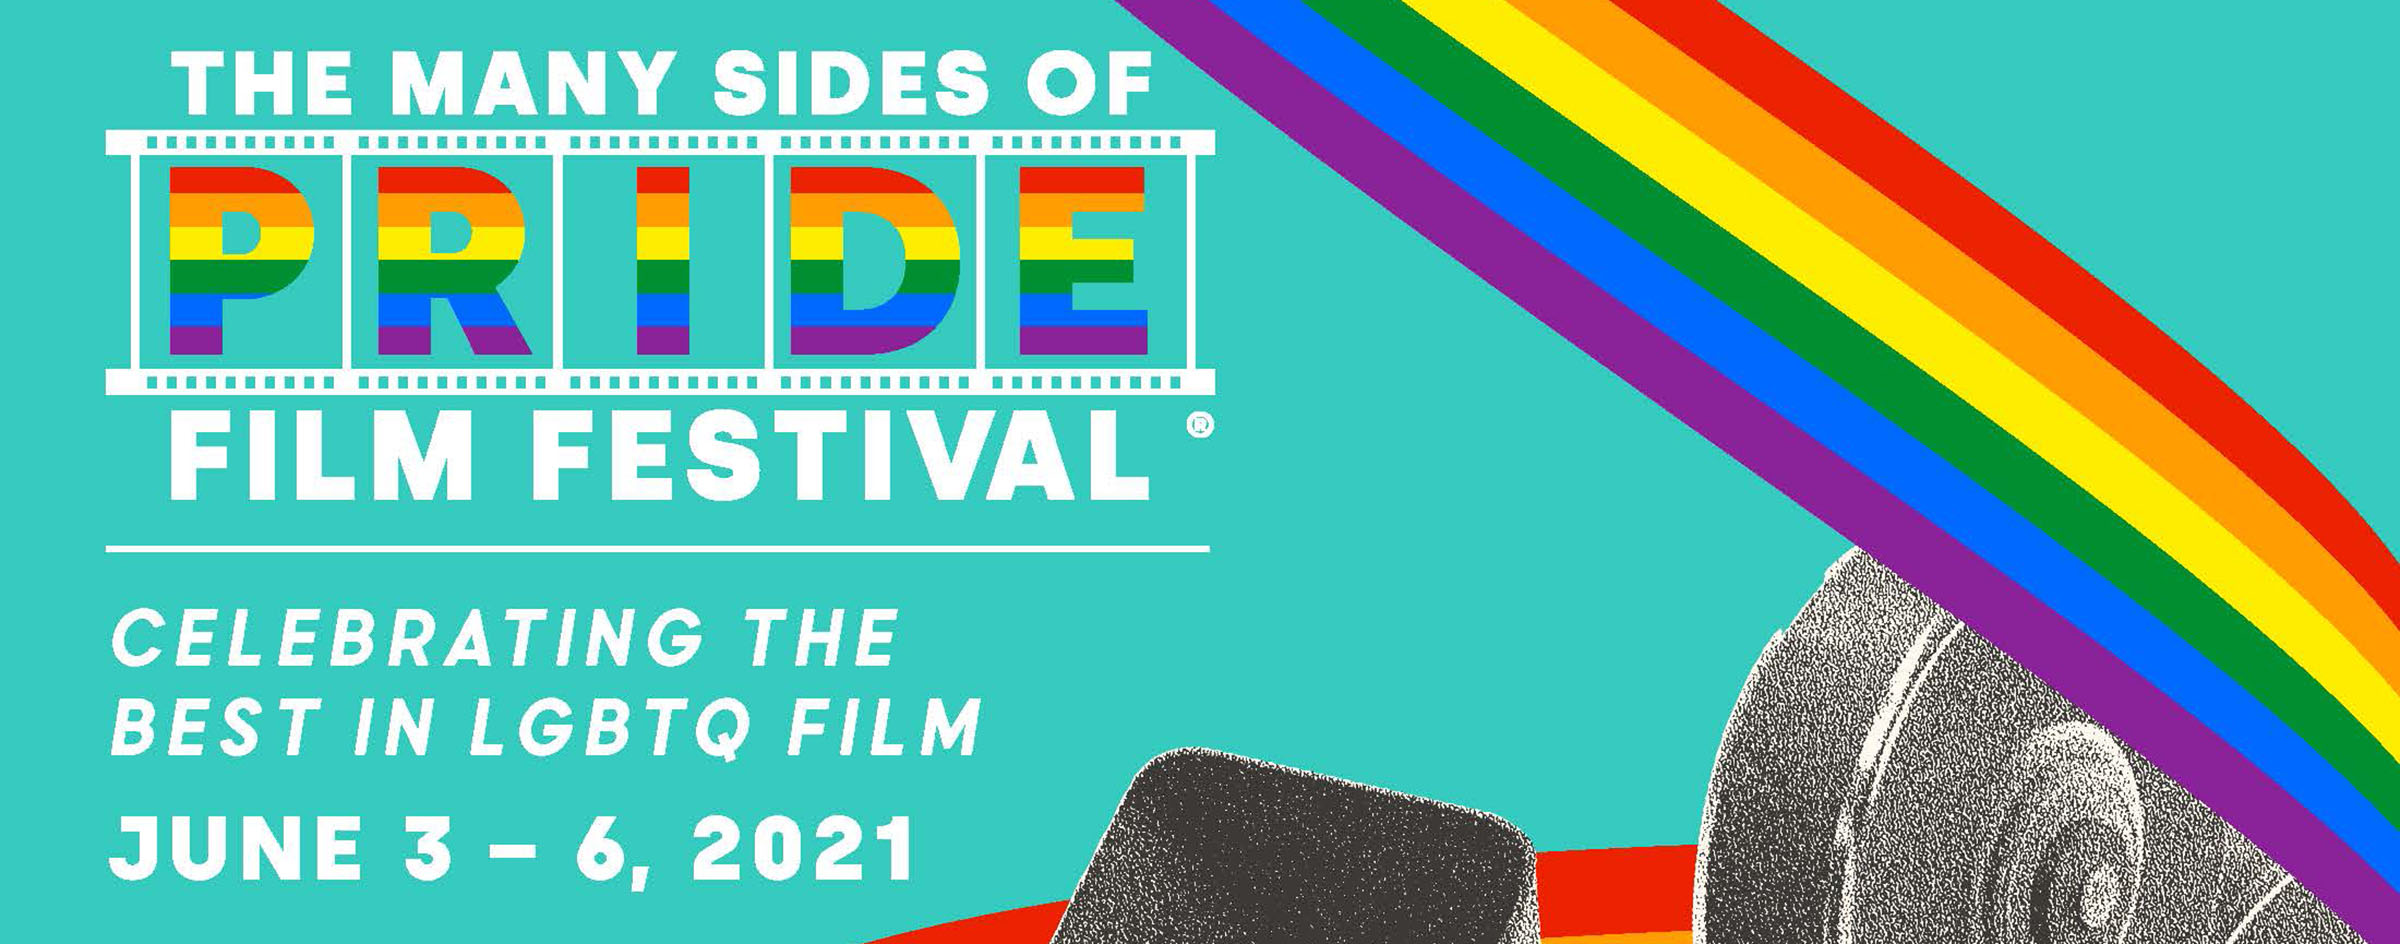 The Many Sides of Pride Film Festival